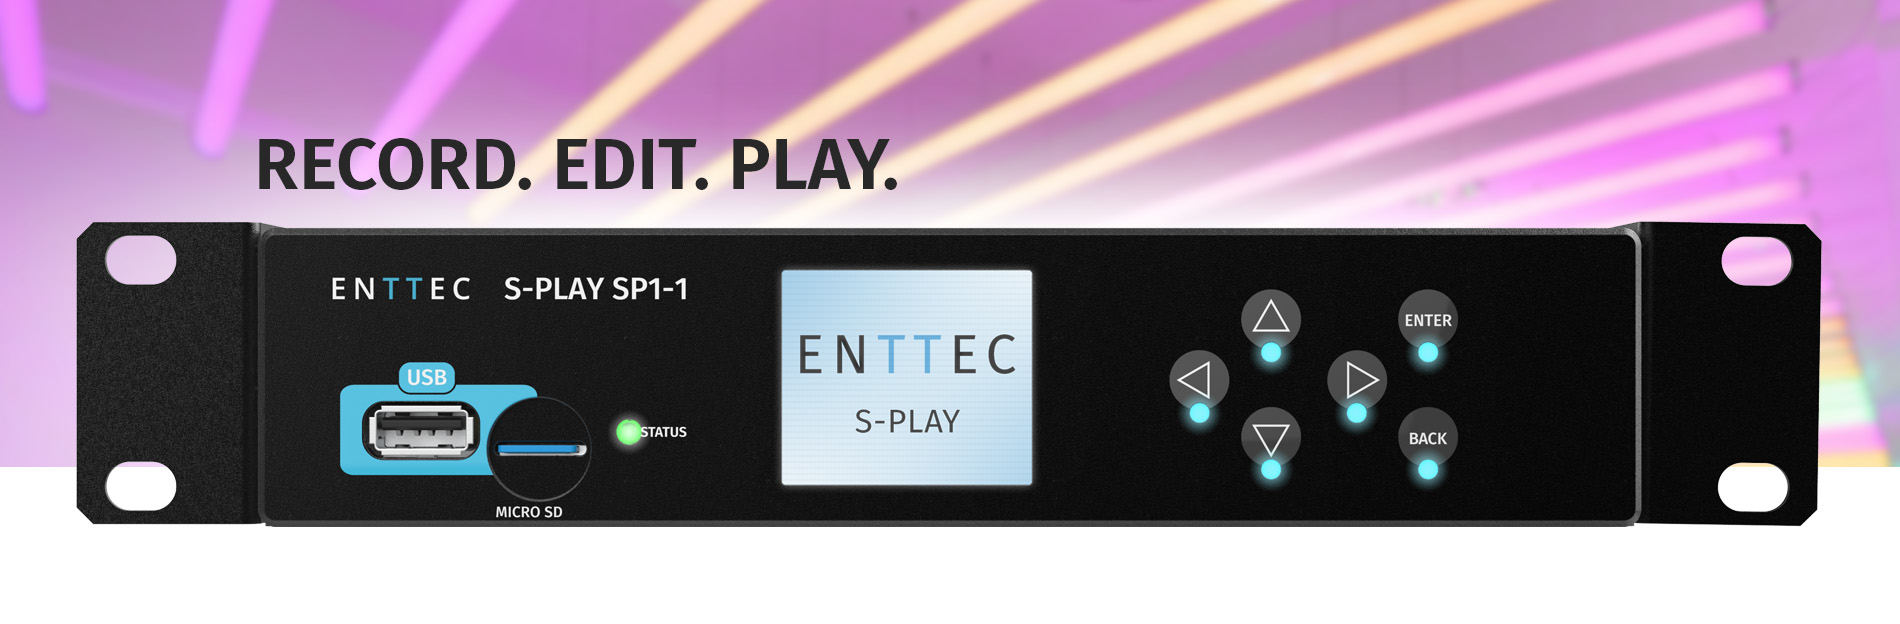 Exciting new features to S-play firmware